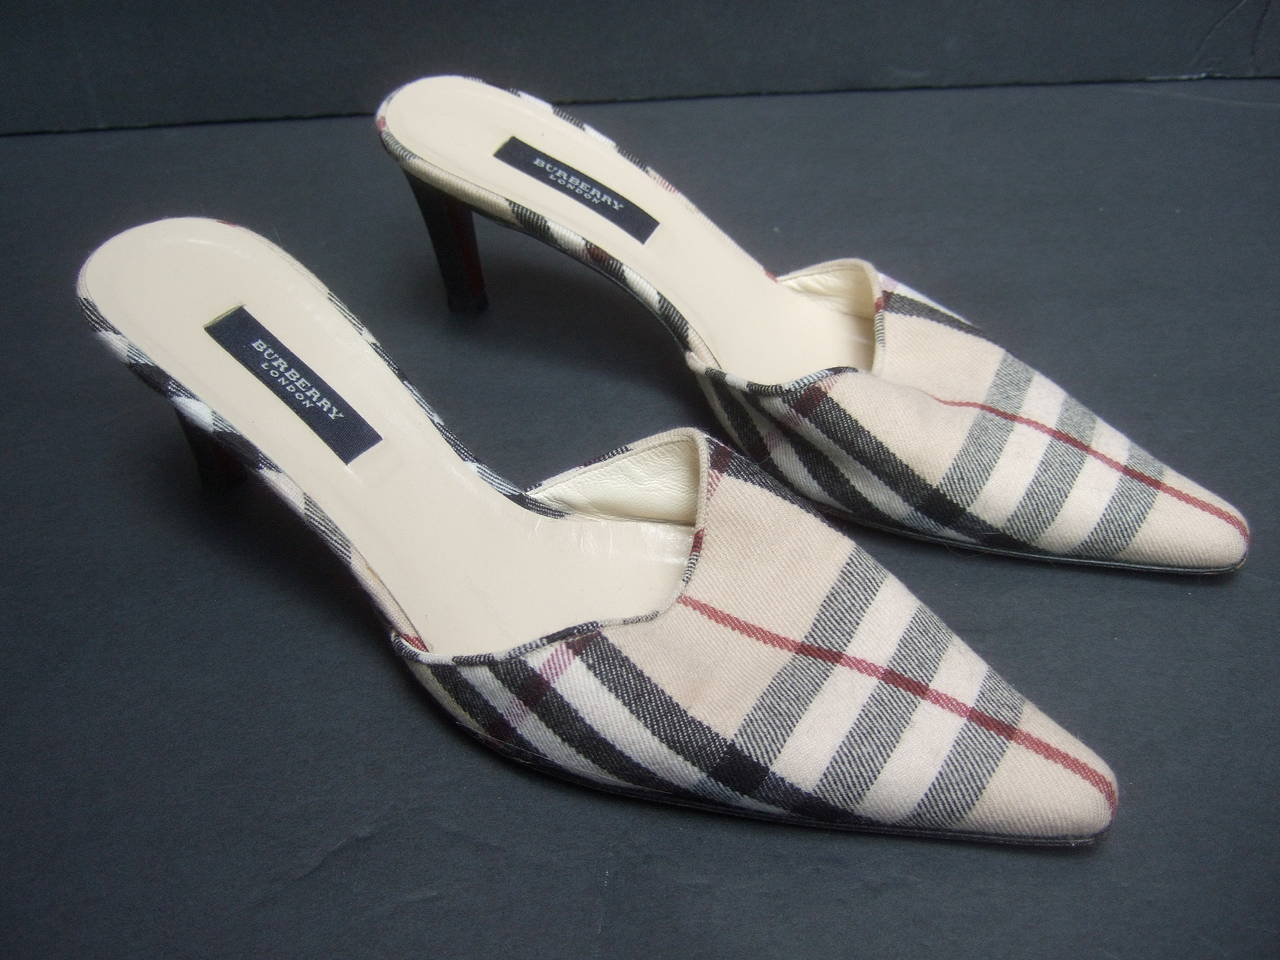 Burberry London classic nova plaid wool mules Size 37.5 The stylish designer shoes are covered with Burberry's  signature wool nova plaid   The interior of the shoes are lined in tan leather Labeled Burberry London Made in Italy  Size 37 1/2